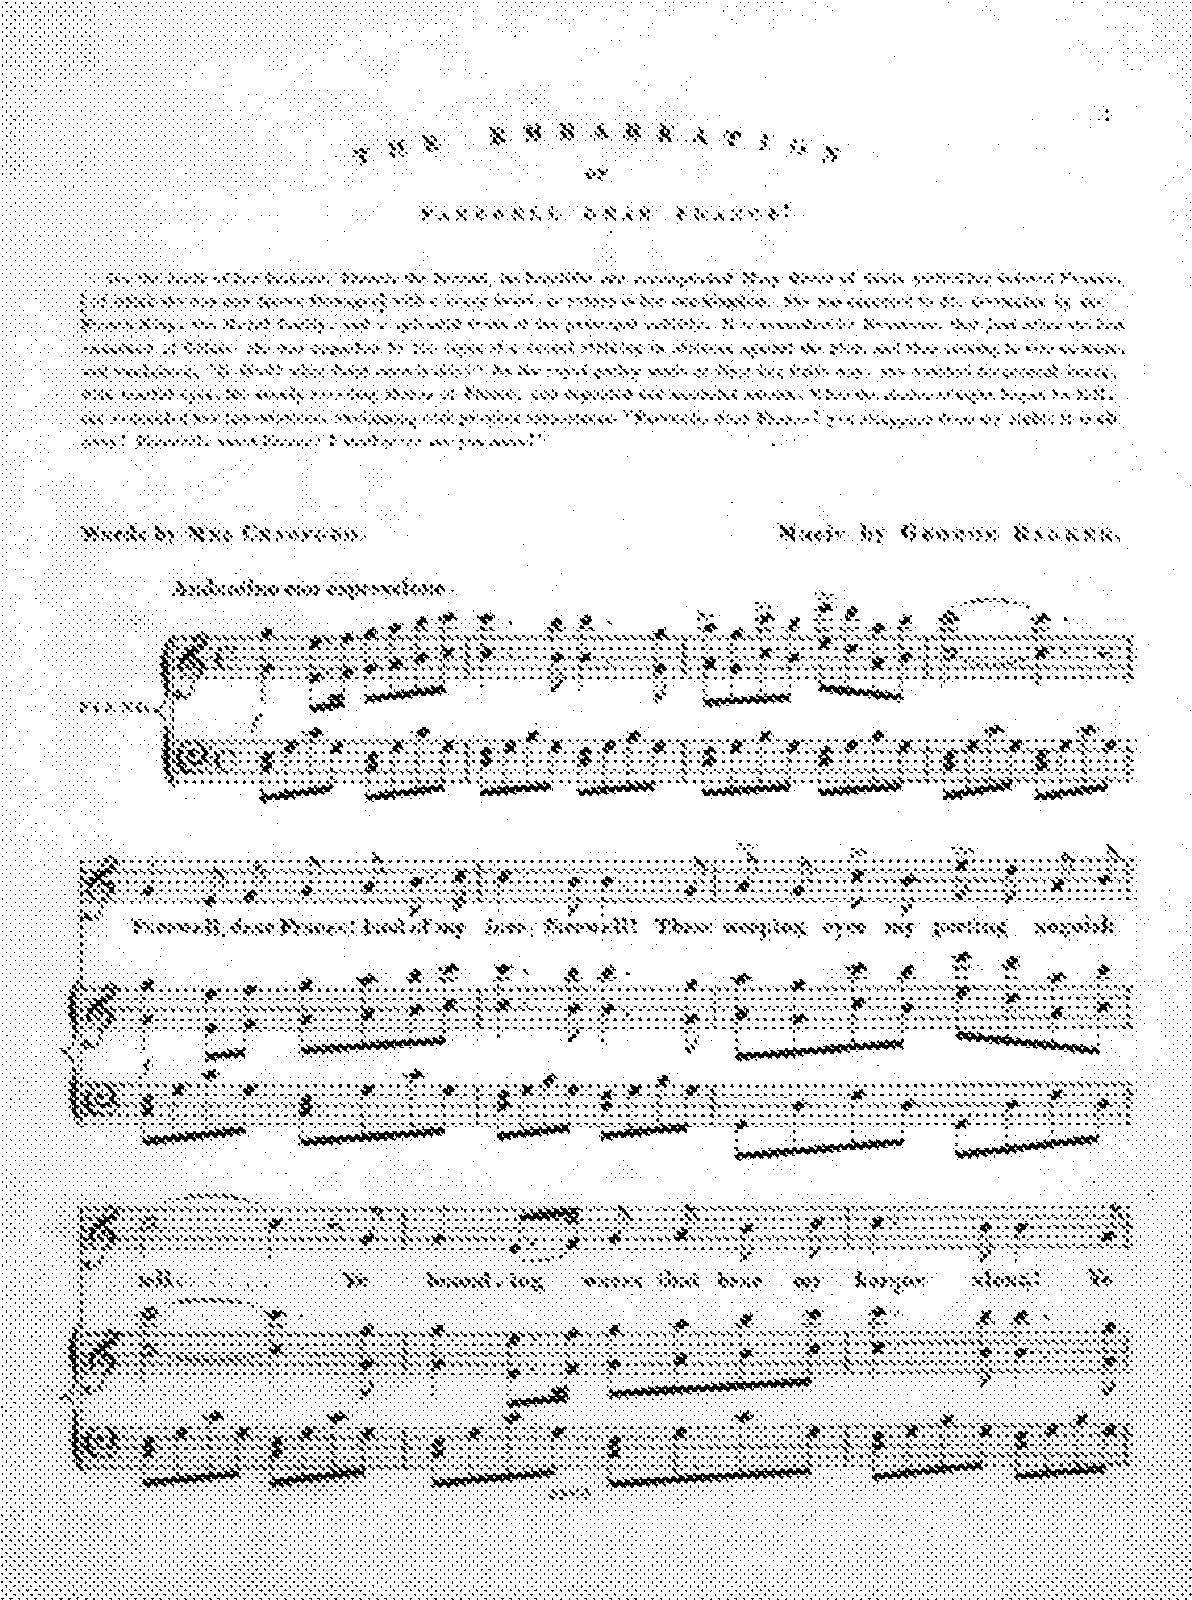 PMLP512648-Barker Songs of Mary Queen of Scots 2. The Embarkation, or Farewell dear France! 042.023.003.pdf